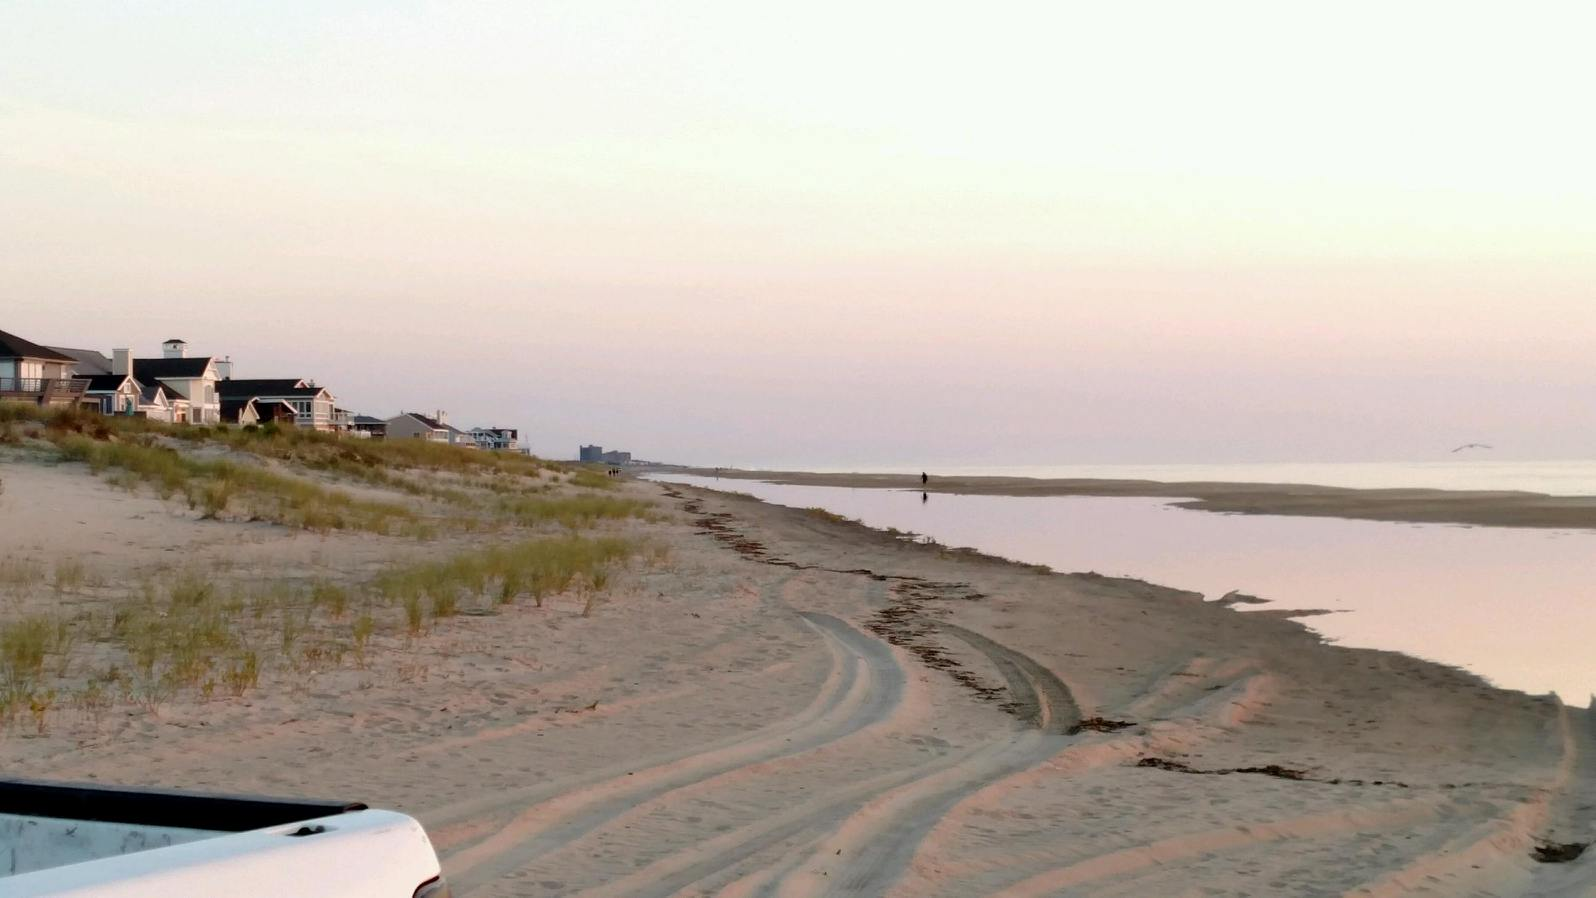 Extreme high tides close drive on beaches for Island beach state park fishing report